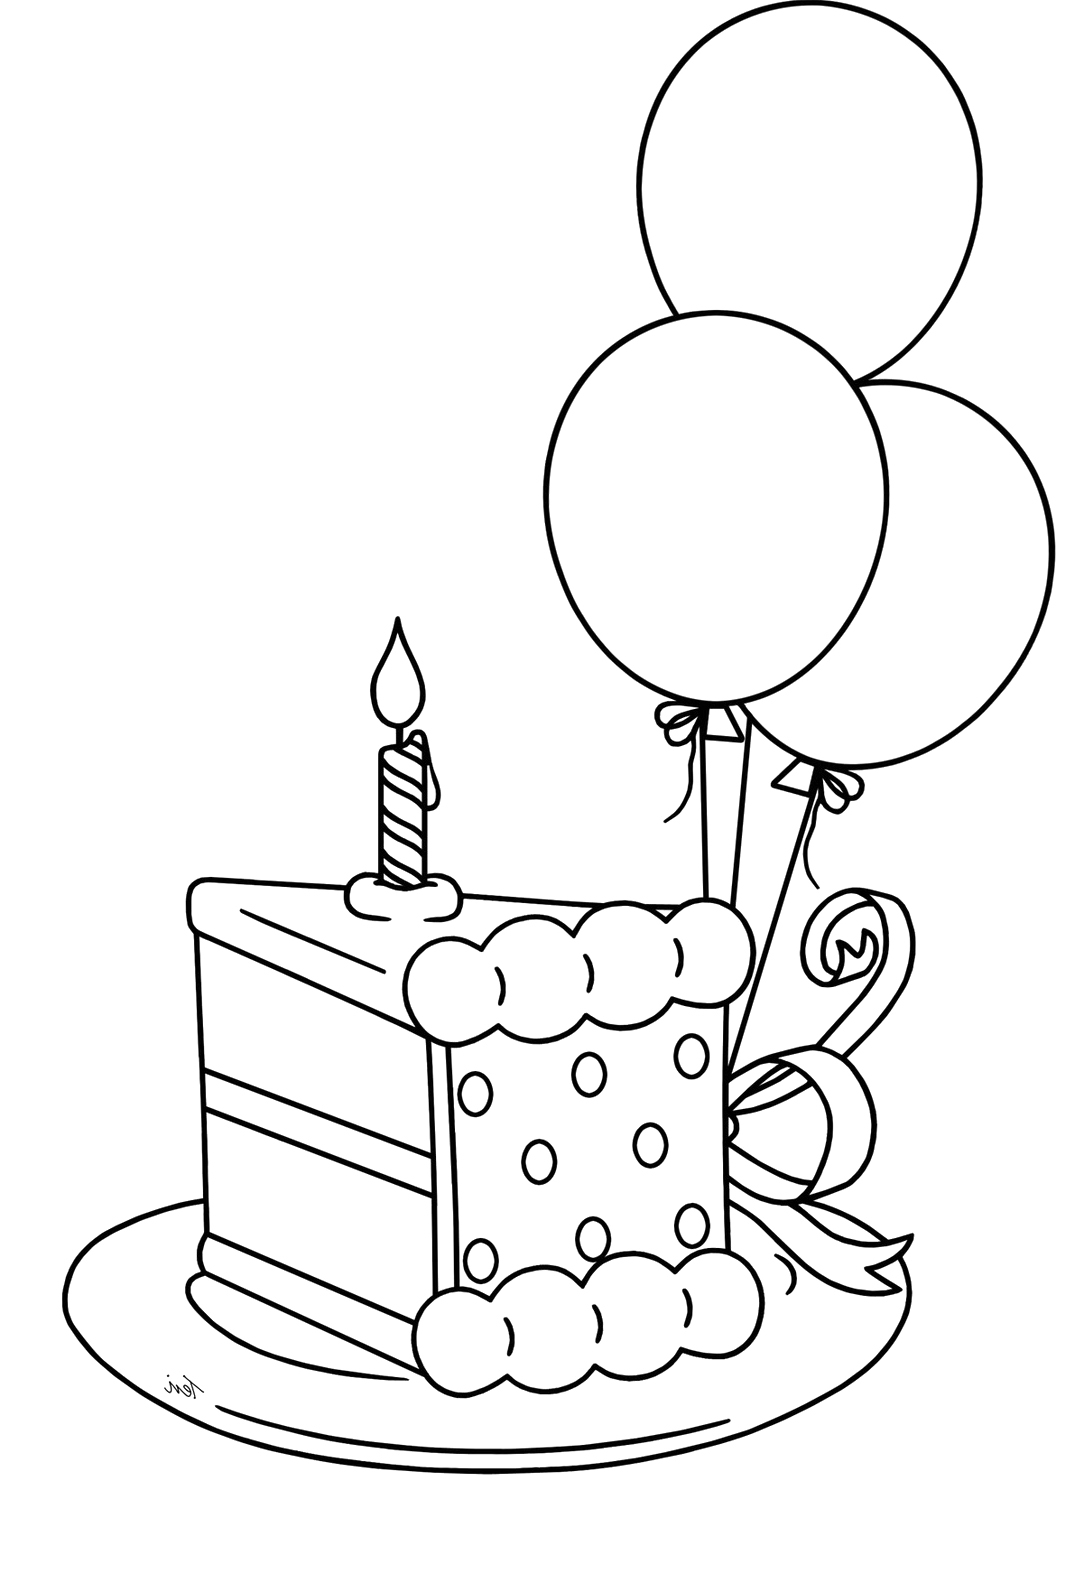 1084x1574 Slice Of Birthday Cake Drawing Birthday Cake Ideas